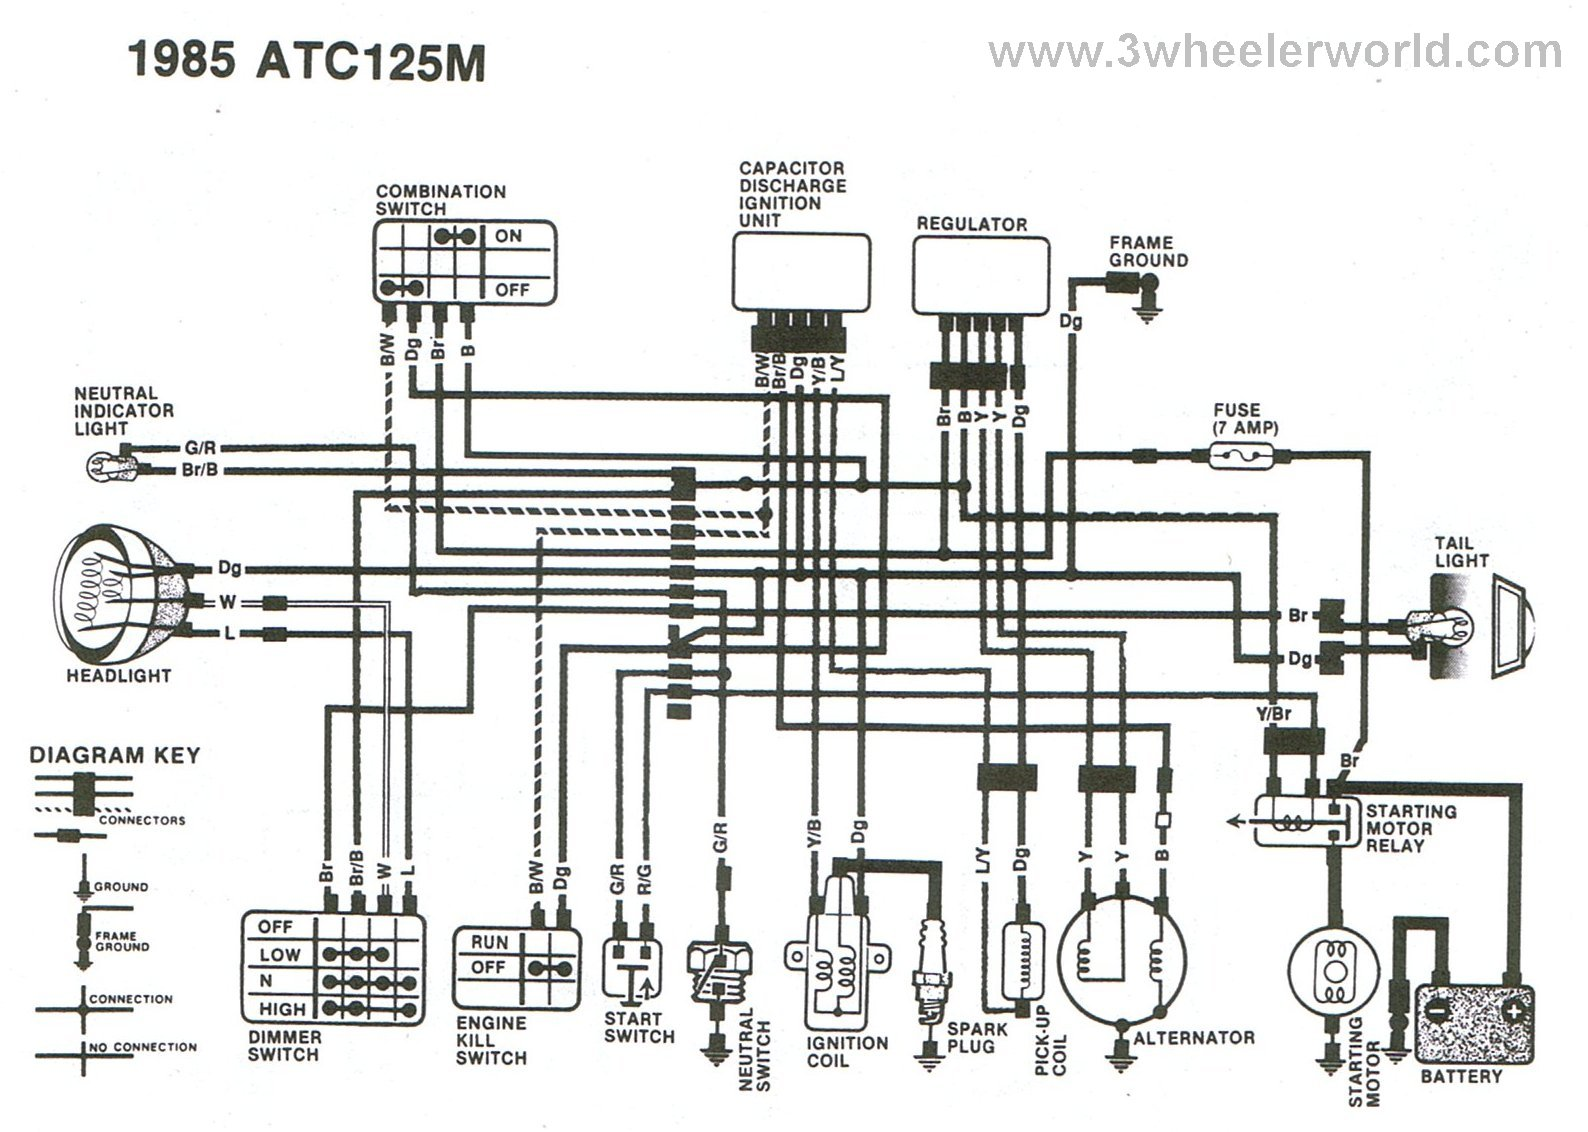 ATC125Mx85 3 wheeler world tech help honda wiring diagrams 125cc wiring diagram at cos-gaming.co